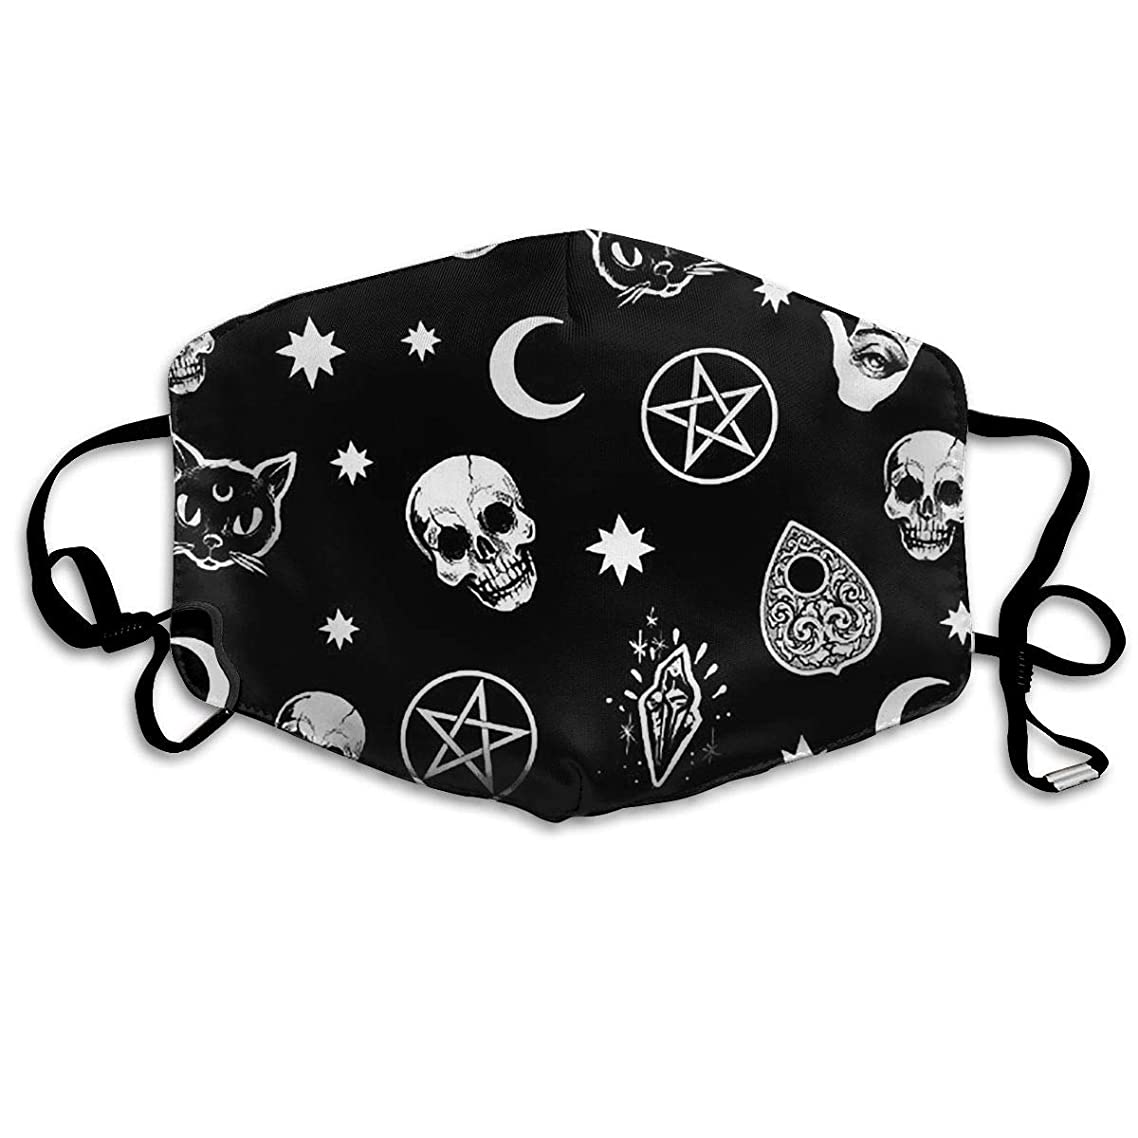 Anti-Allergies Flu Dust Face Mask, Earloop Half Face Mask for Women Men, Ski Cycling Mouth-Muffle with Adjustable Elastic Band - Skull Cat Moon Gothic Pattern Black Washable Mask